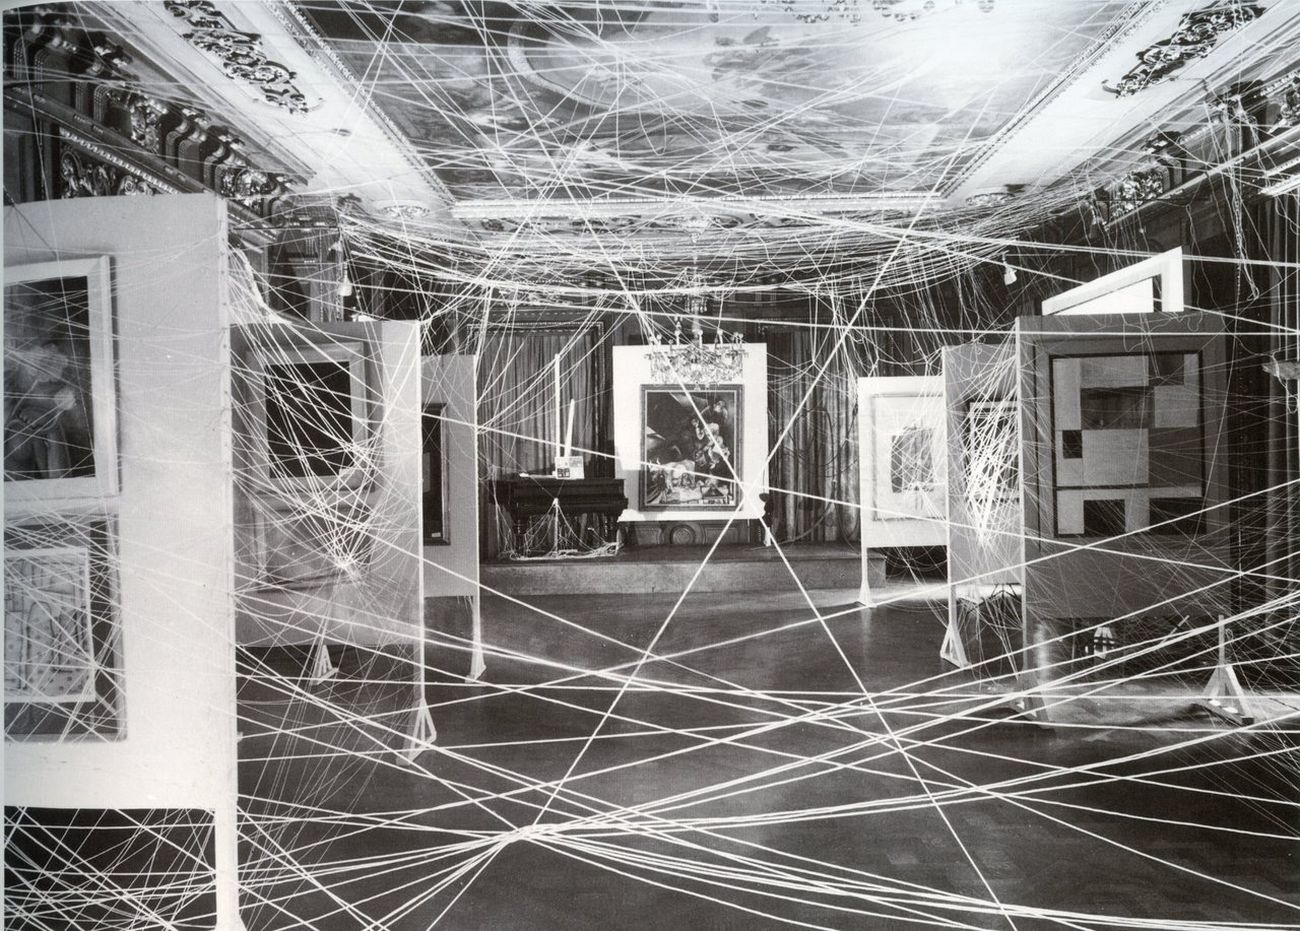 First Papers of Surrealism. Installation view at The Art of This Century Gallery, New York 1942. Marcel Duchamp, His Twine. Photo John D. Schiff